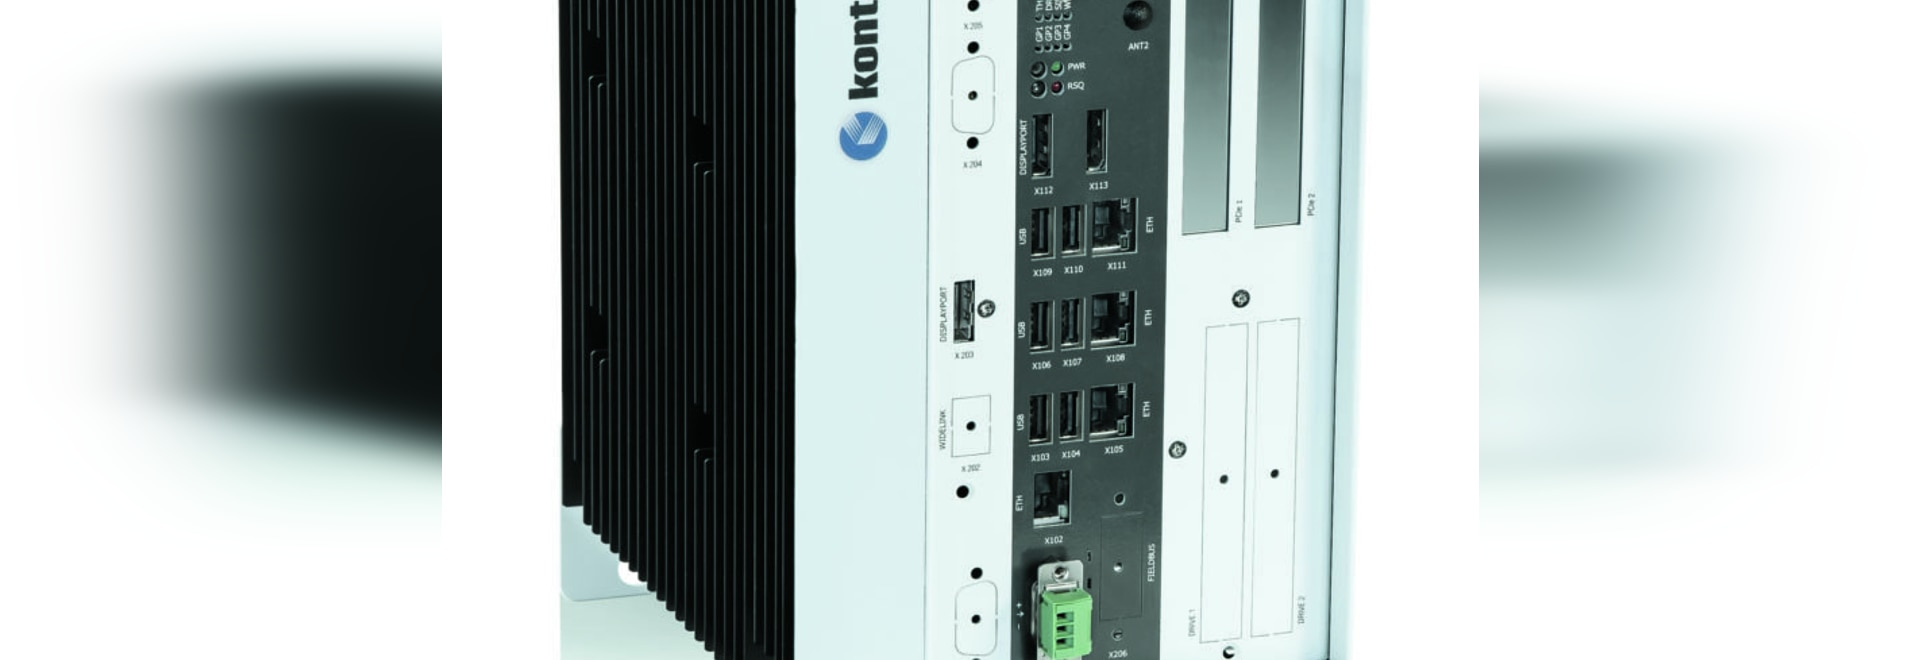 Flexible and powerful: Kontron adds the new KBox C-103-CFL series to its industrial computer family